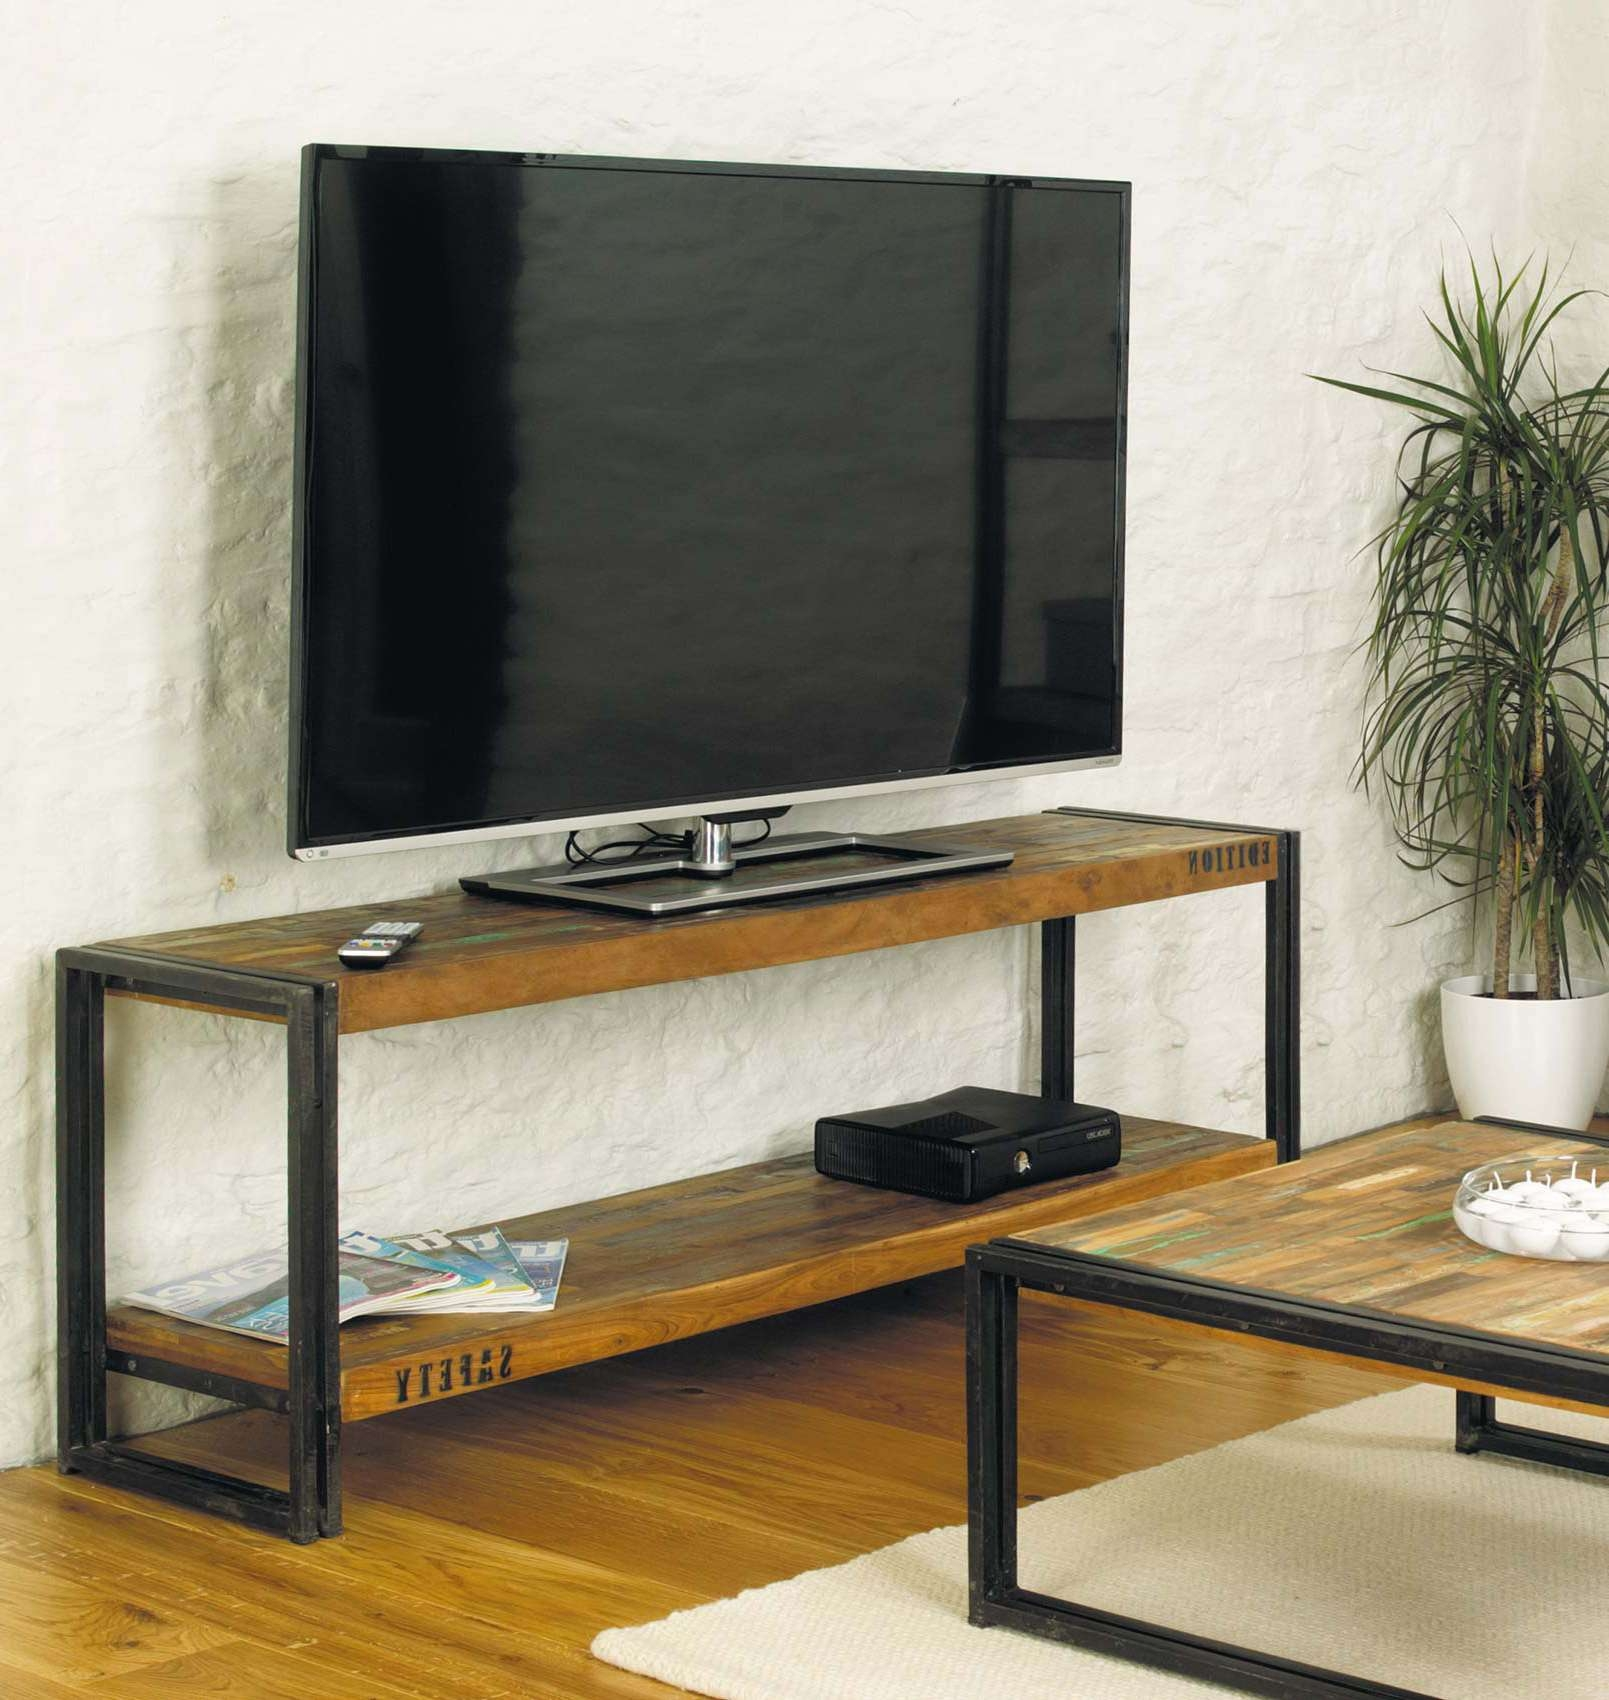 Industrial Media Cabinet Rack Tv Stand With Metal Legs And Within Metal And Wood Tv Stands (View 13 of 15)